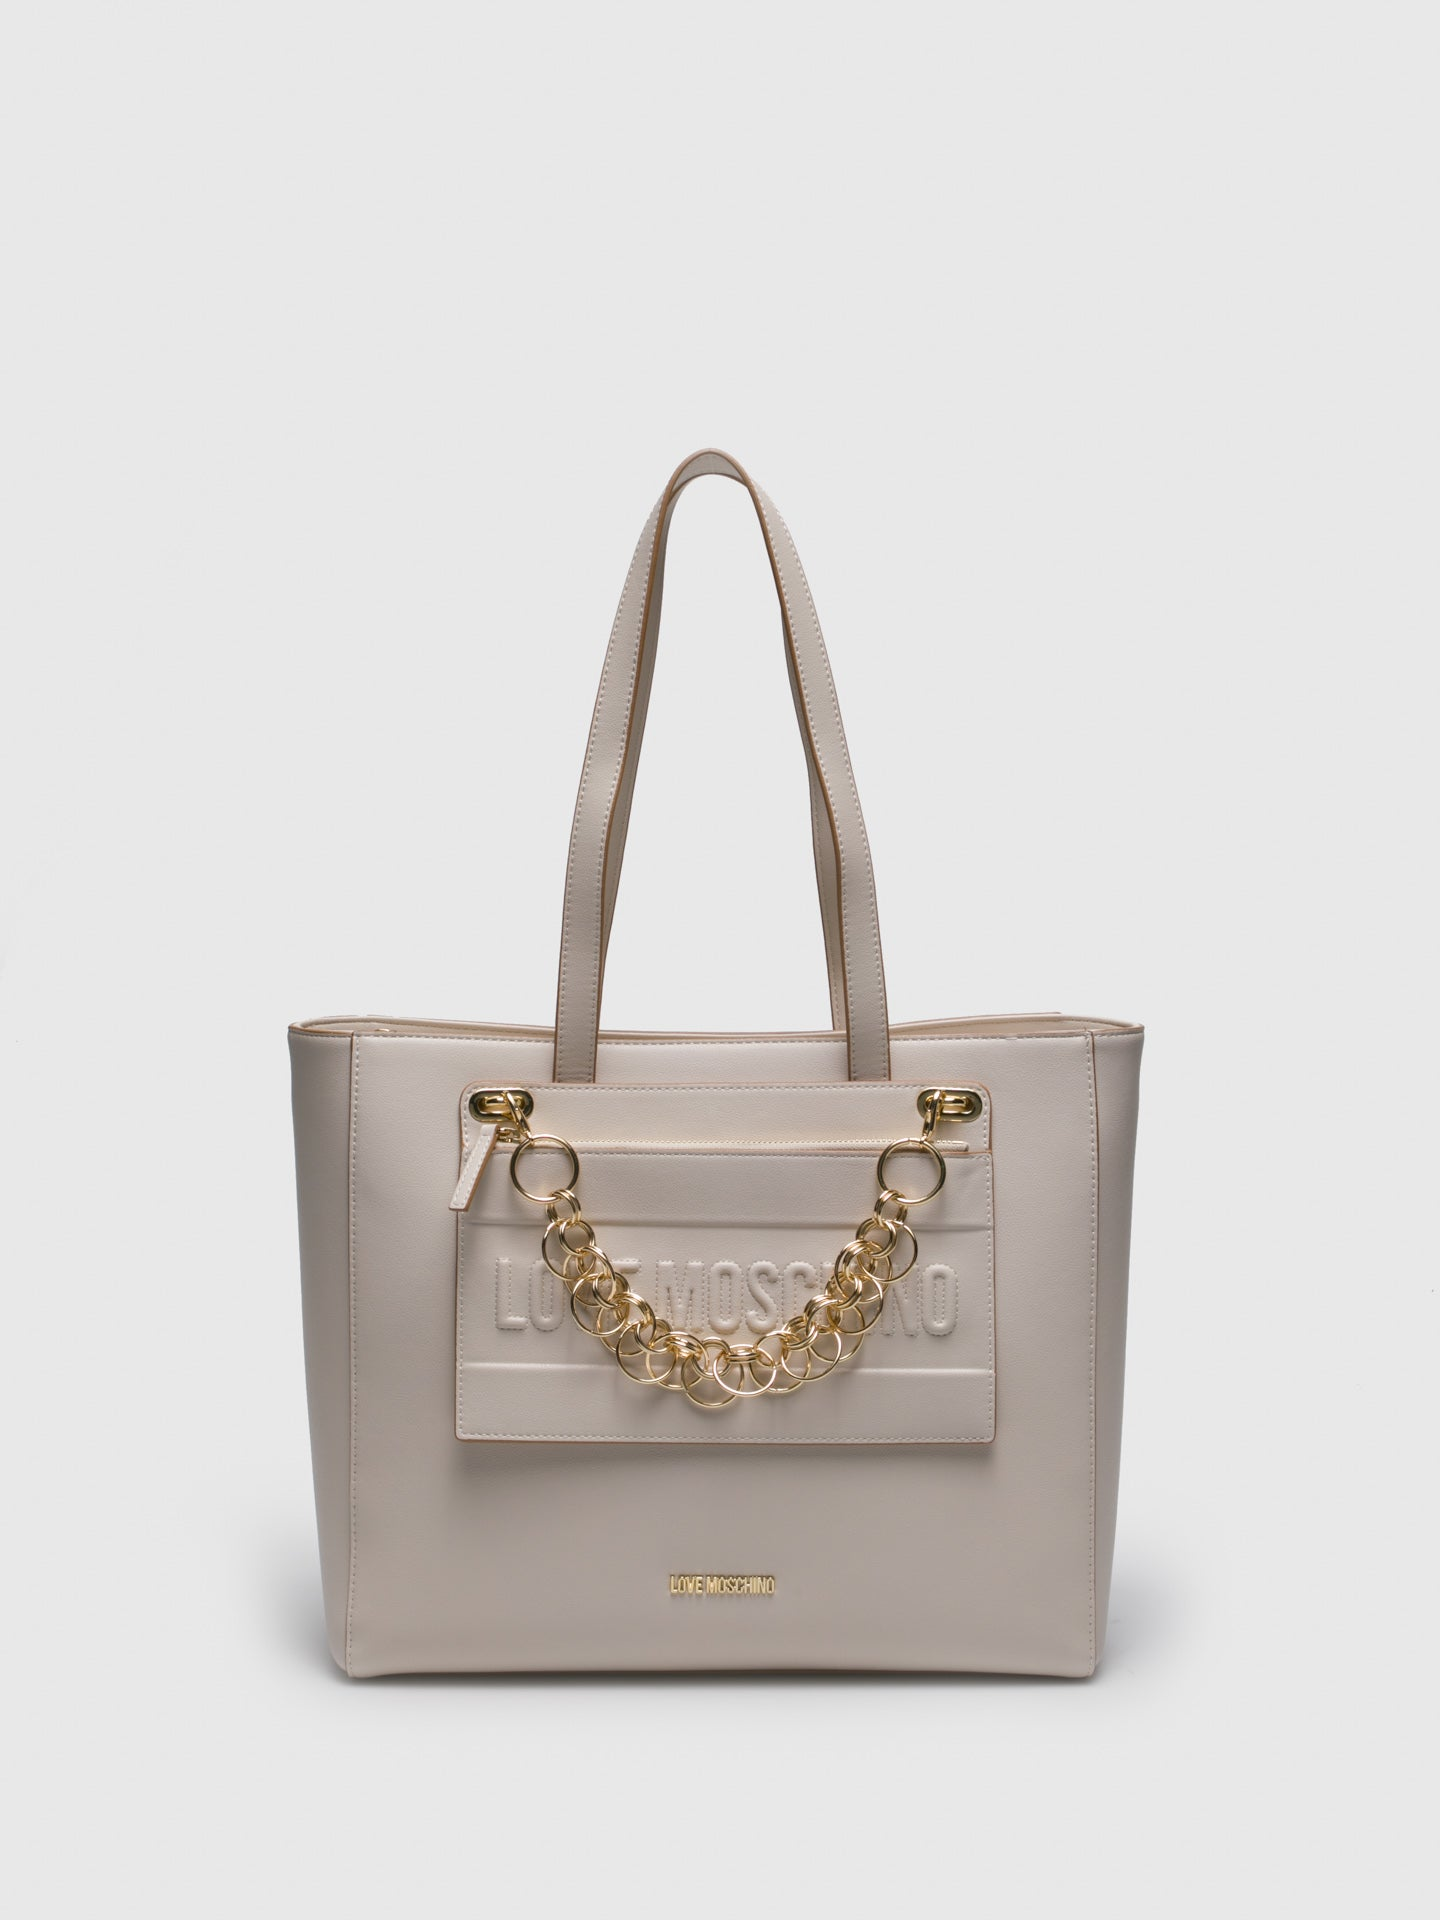 LOVE MOSCHINO Beige Shoulder Bag